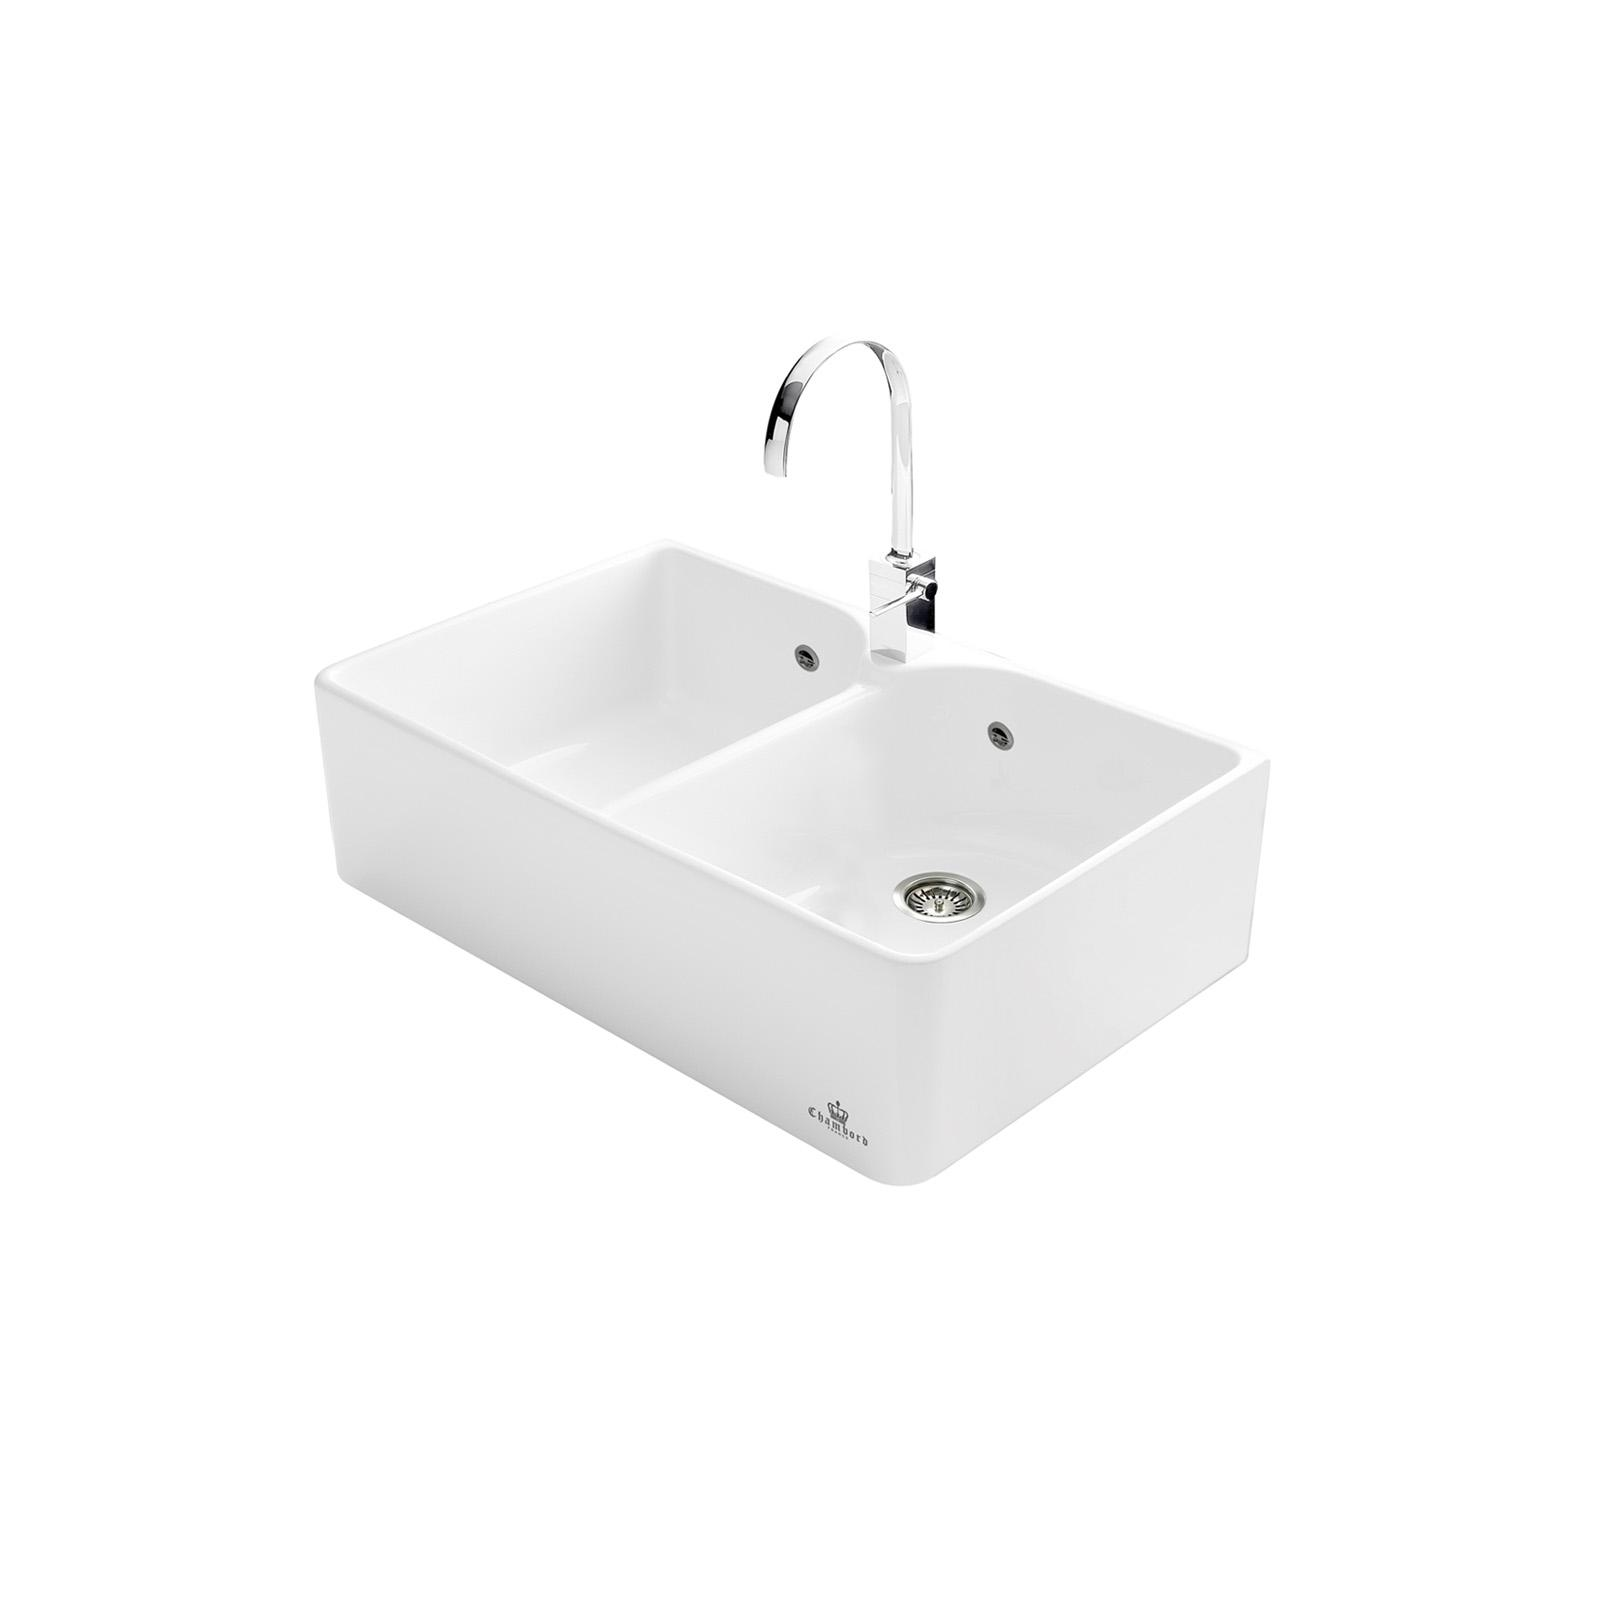 High-quality sink Clotaire II - two bowls, ceramic - ambience